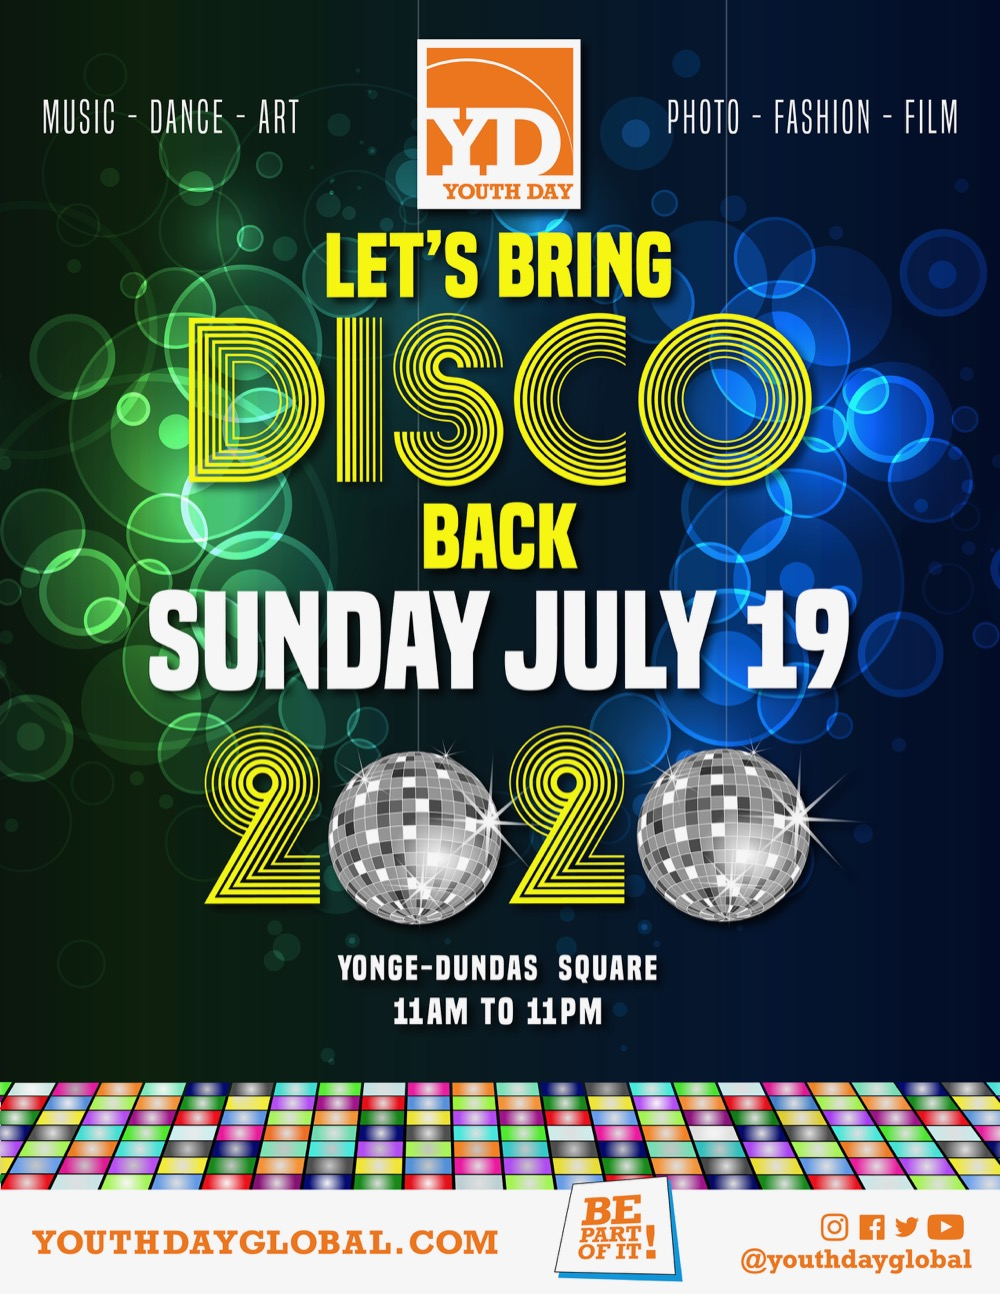 Youth Day Brings Disco Back Poster